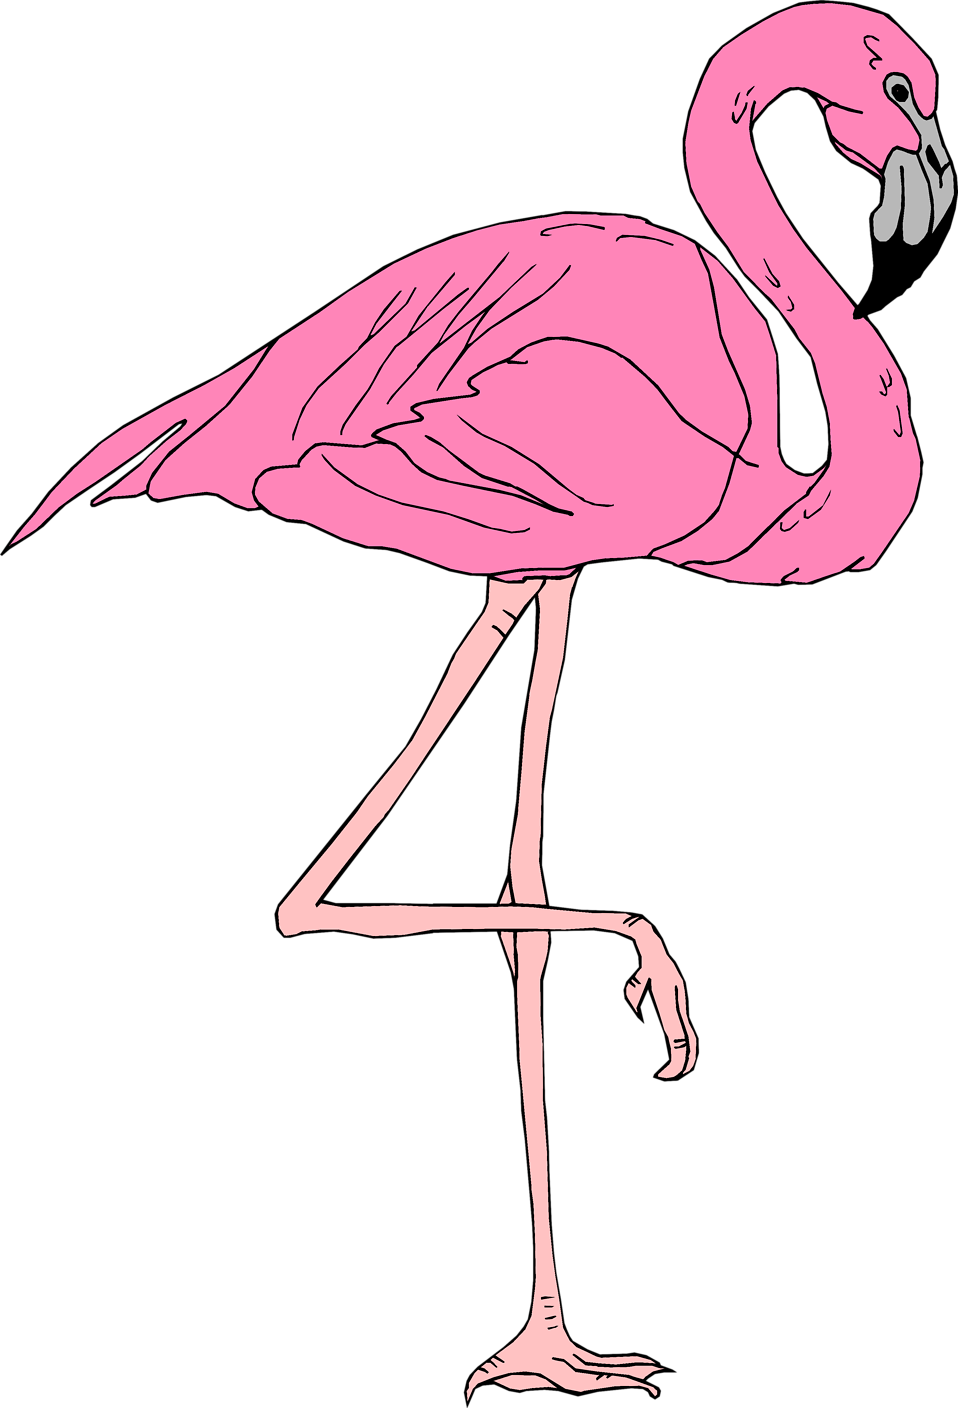 Flamingo   Free Stock Photo   Illustration Of A Pink Flamingo     3399